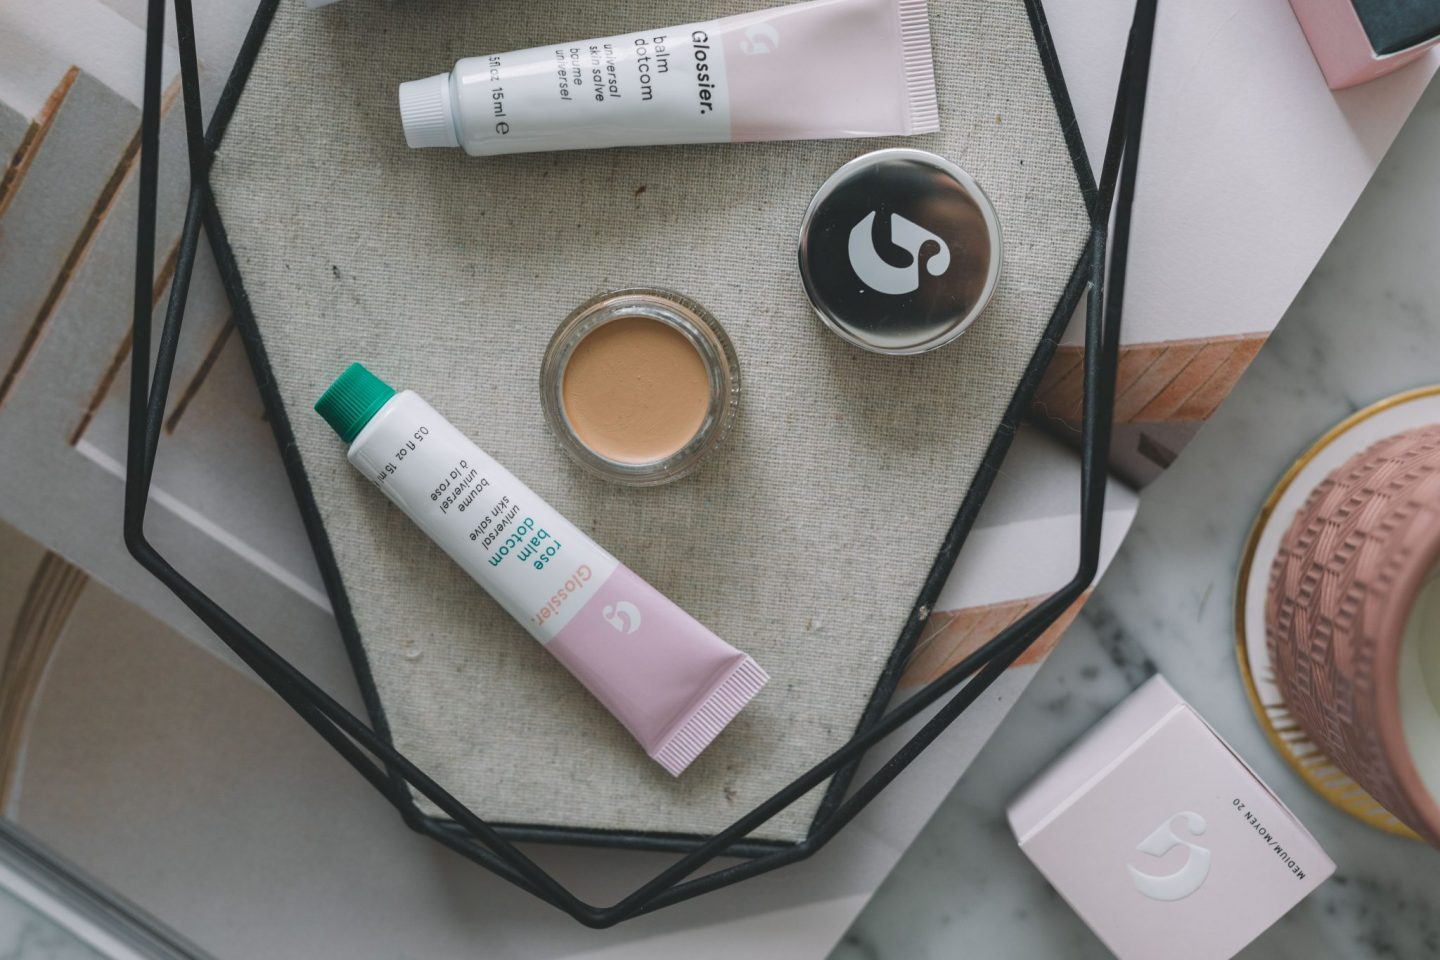 glossier skincare & beauty 4